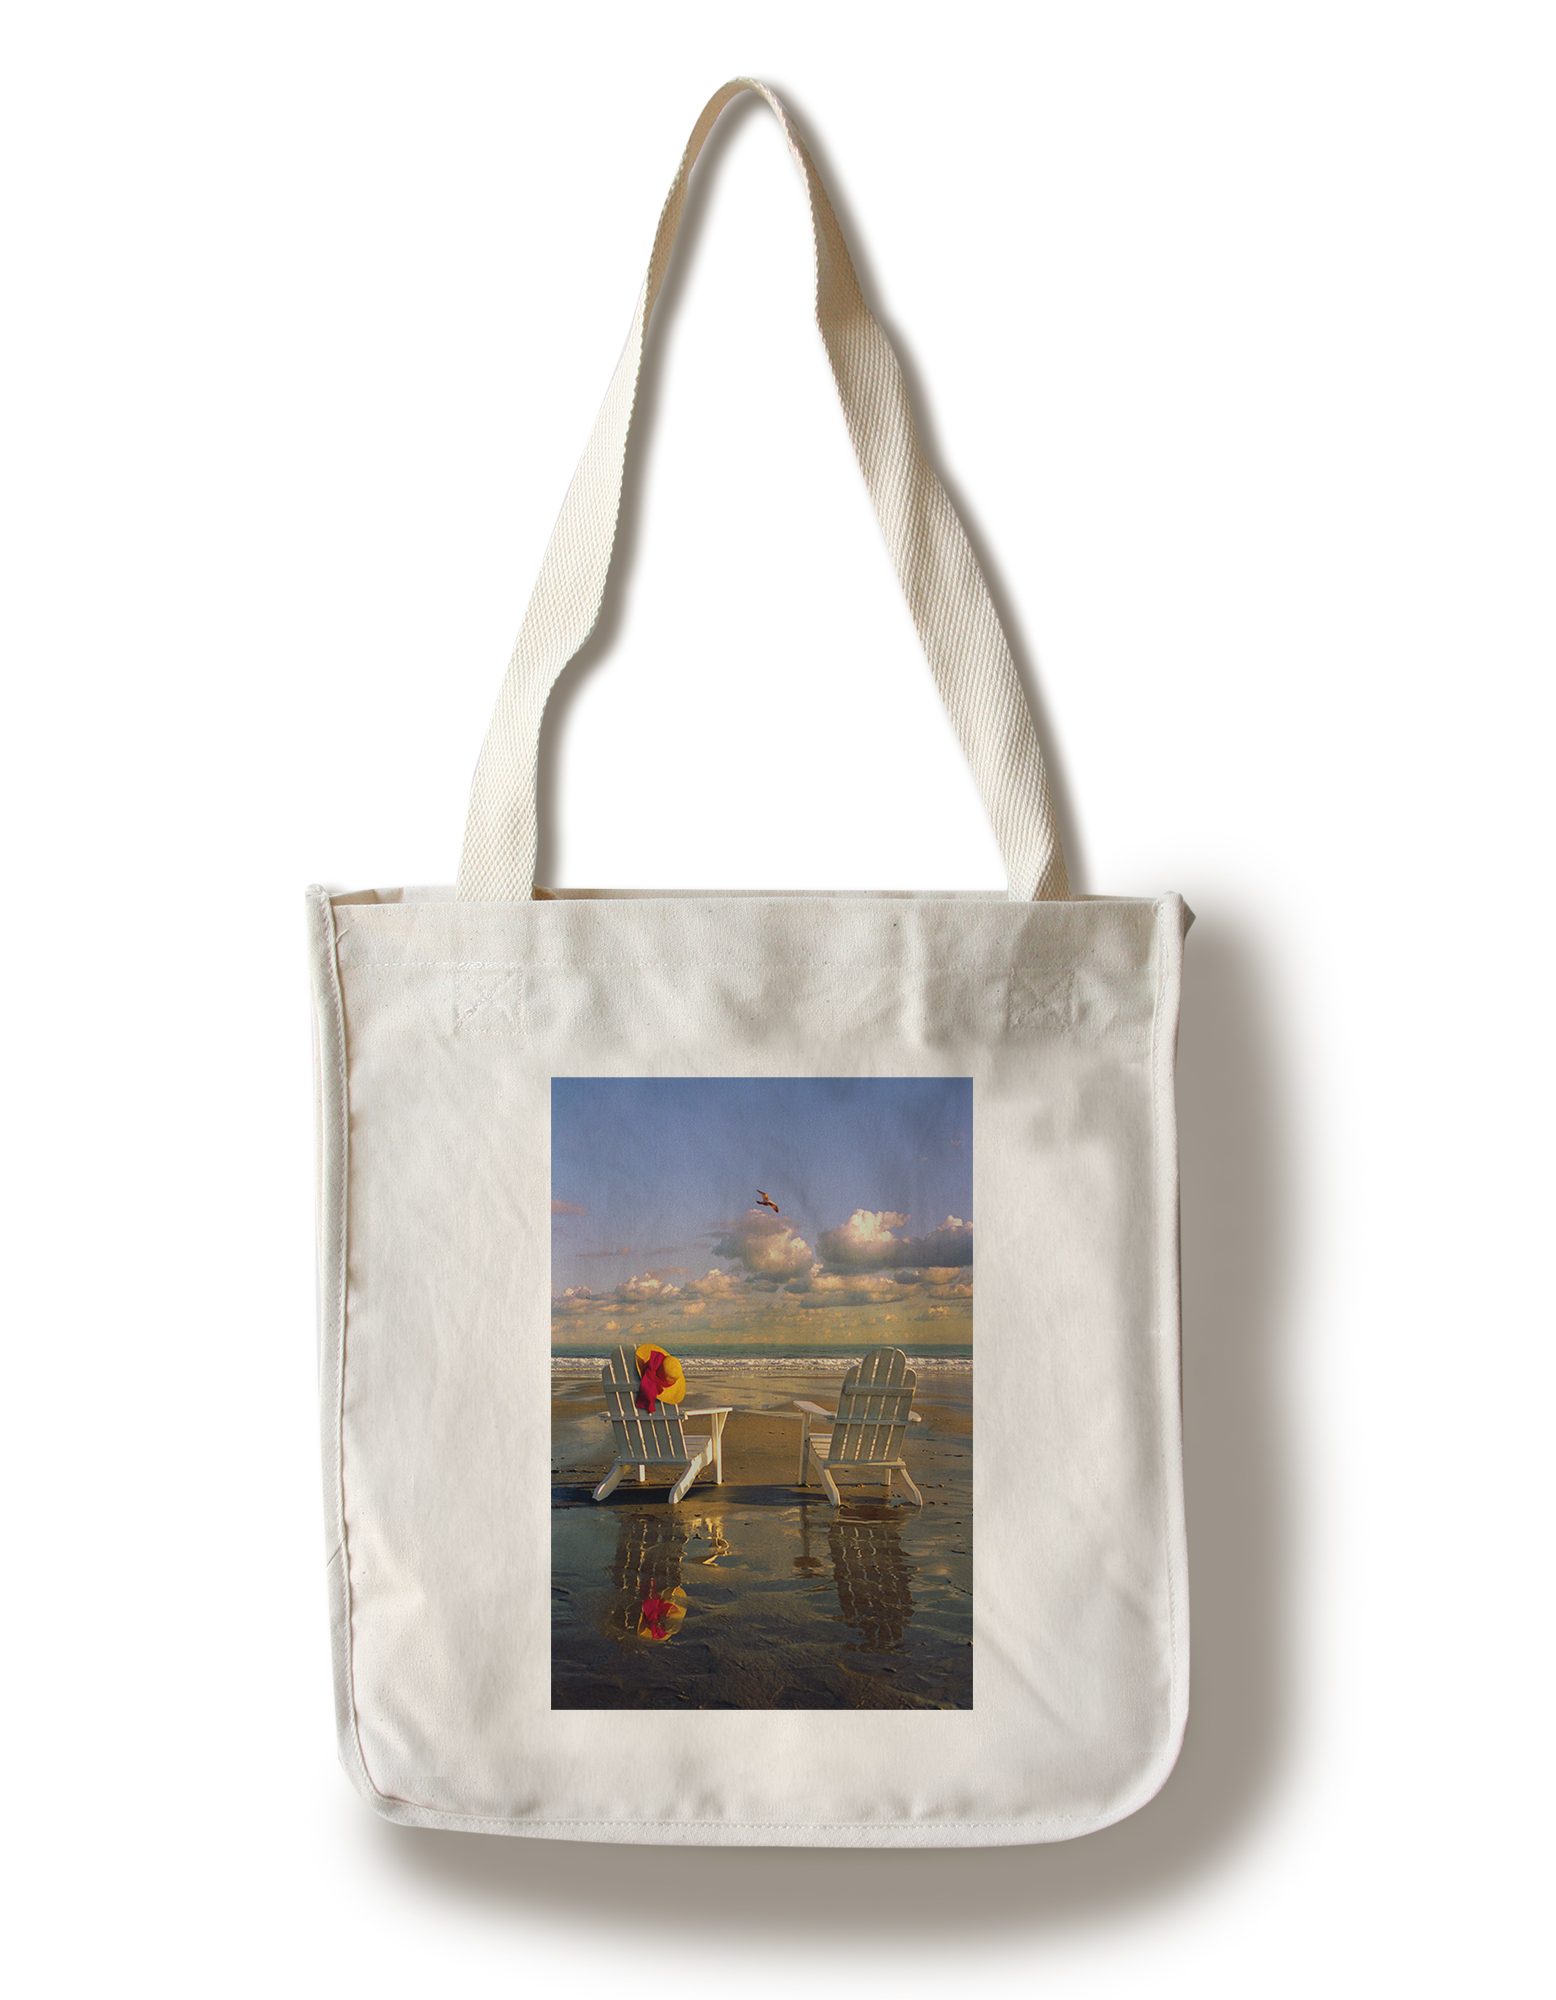 Chairs in Water IMage Only Adirondack Chairs on the Beach Lantern Press Photography (100% Cotton Tote Bag Reusable) by Lantern Press